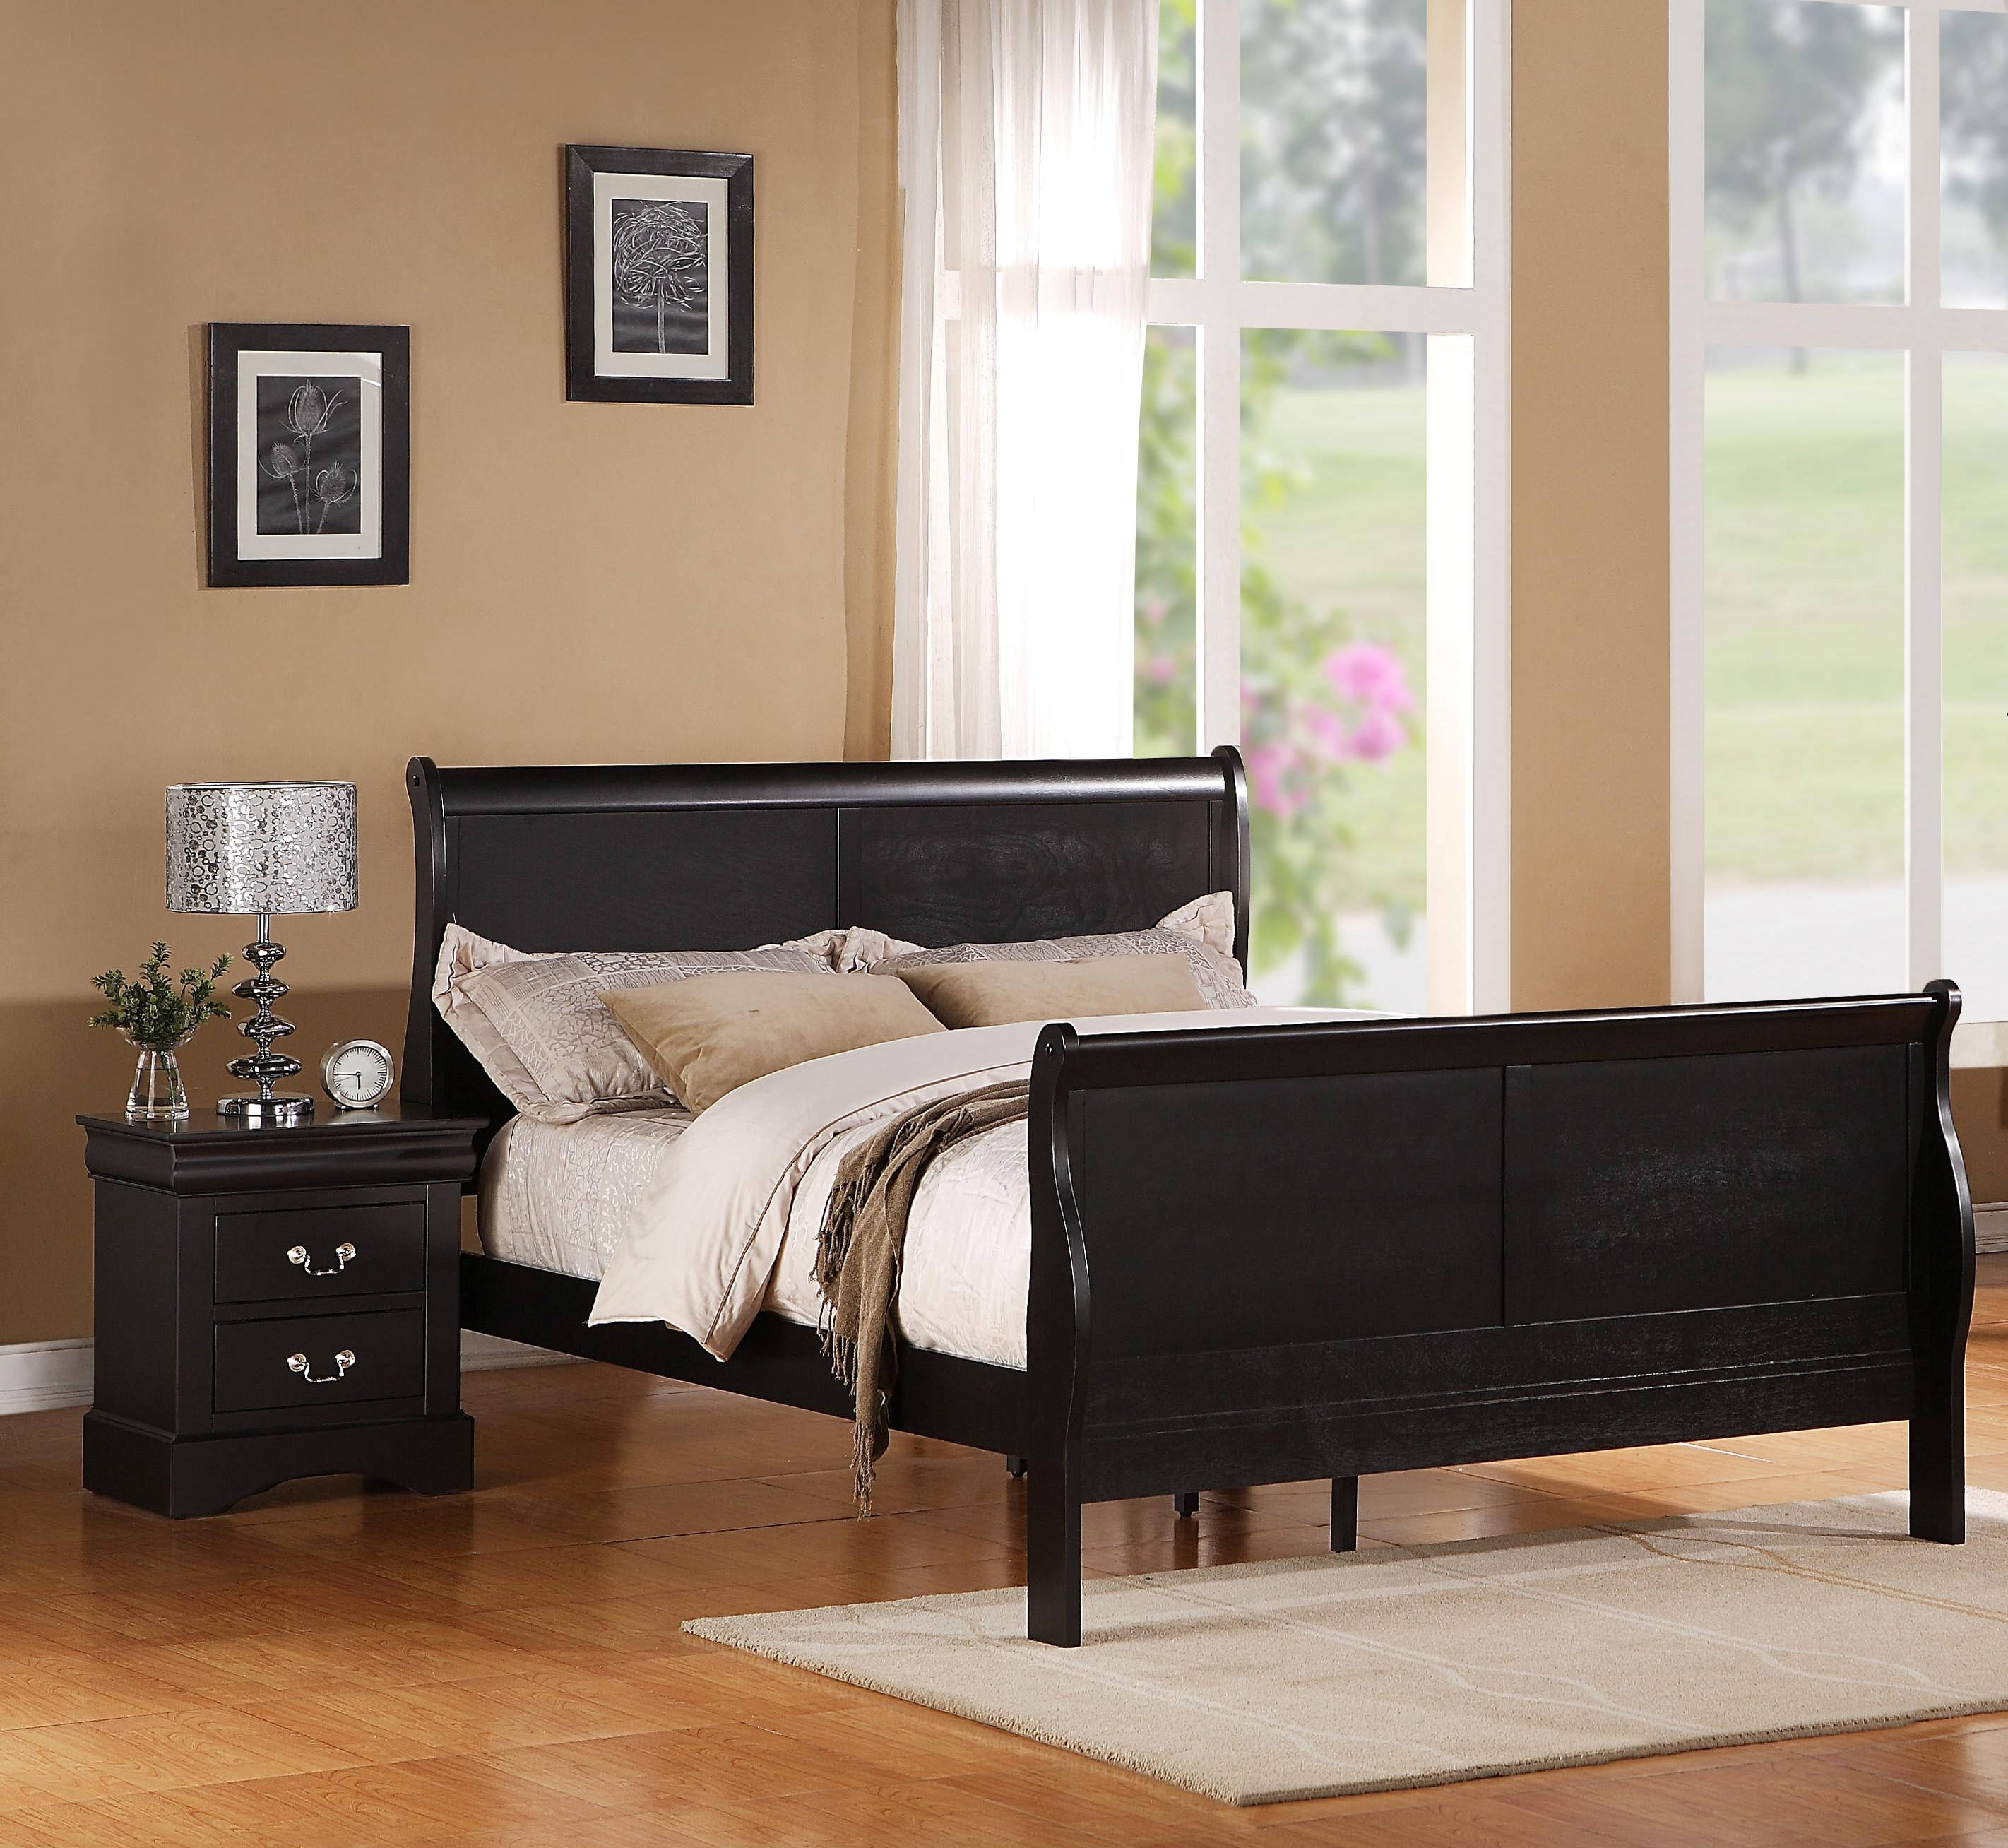 Standard Furniture Lewiston Black 2pc Bedroom Set with Twin Sleigh Bed